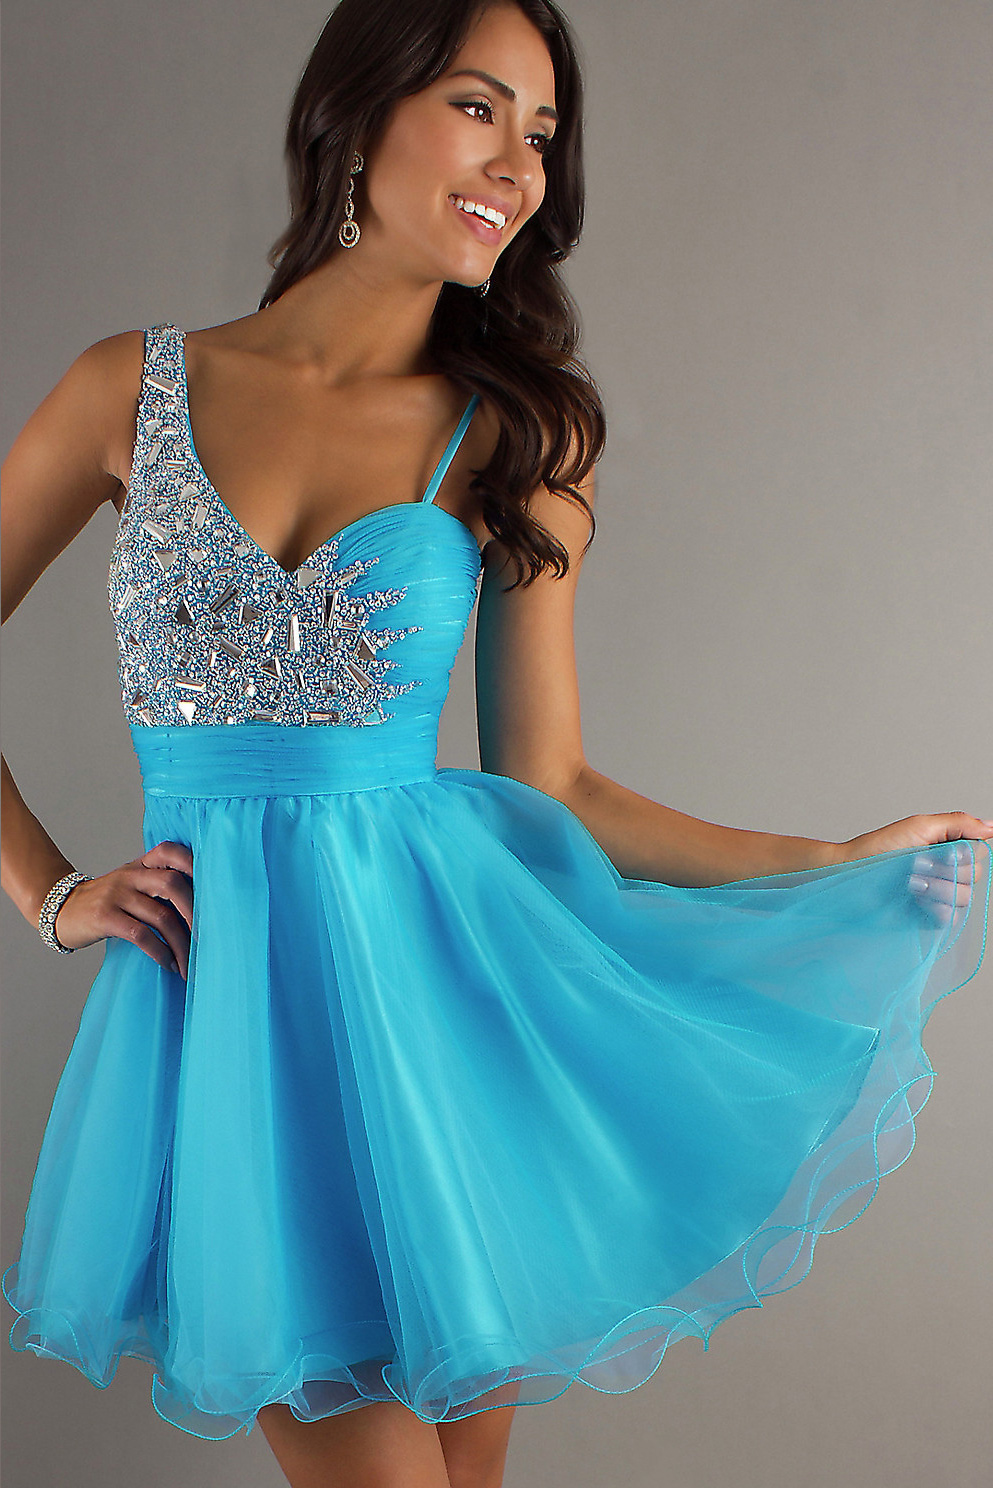 Blue Dresses For Homecoming